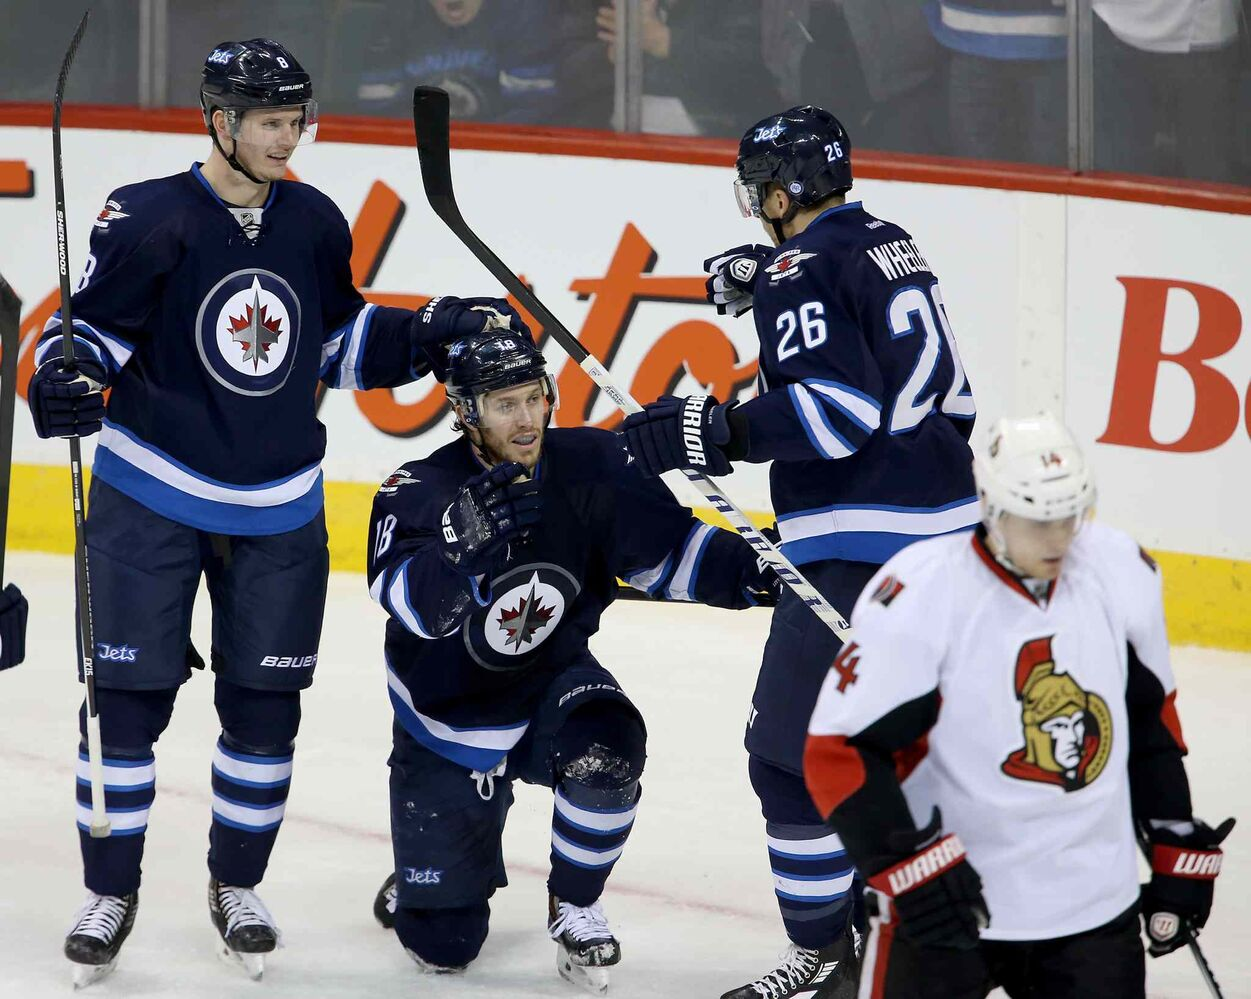 Winnipeg Jets' Jacob Trouba (8), Bryan Little (18) and Blake Wheeler (26) celebrate as Ottawa Senators' Colin Greening (14) looks on after Little scored during first period NHL hockey action at MTS Centre in Winnipeg Saturday.